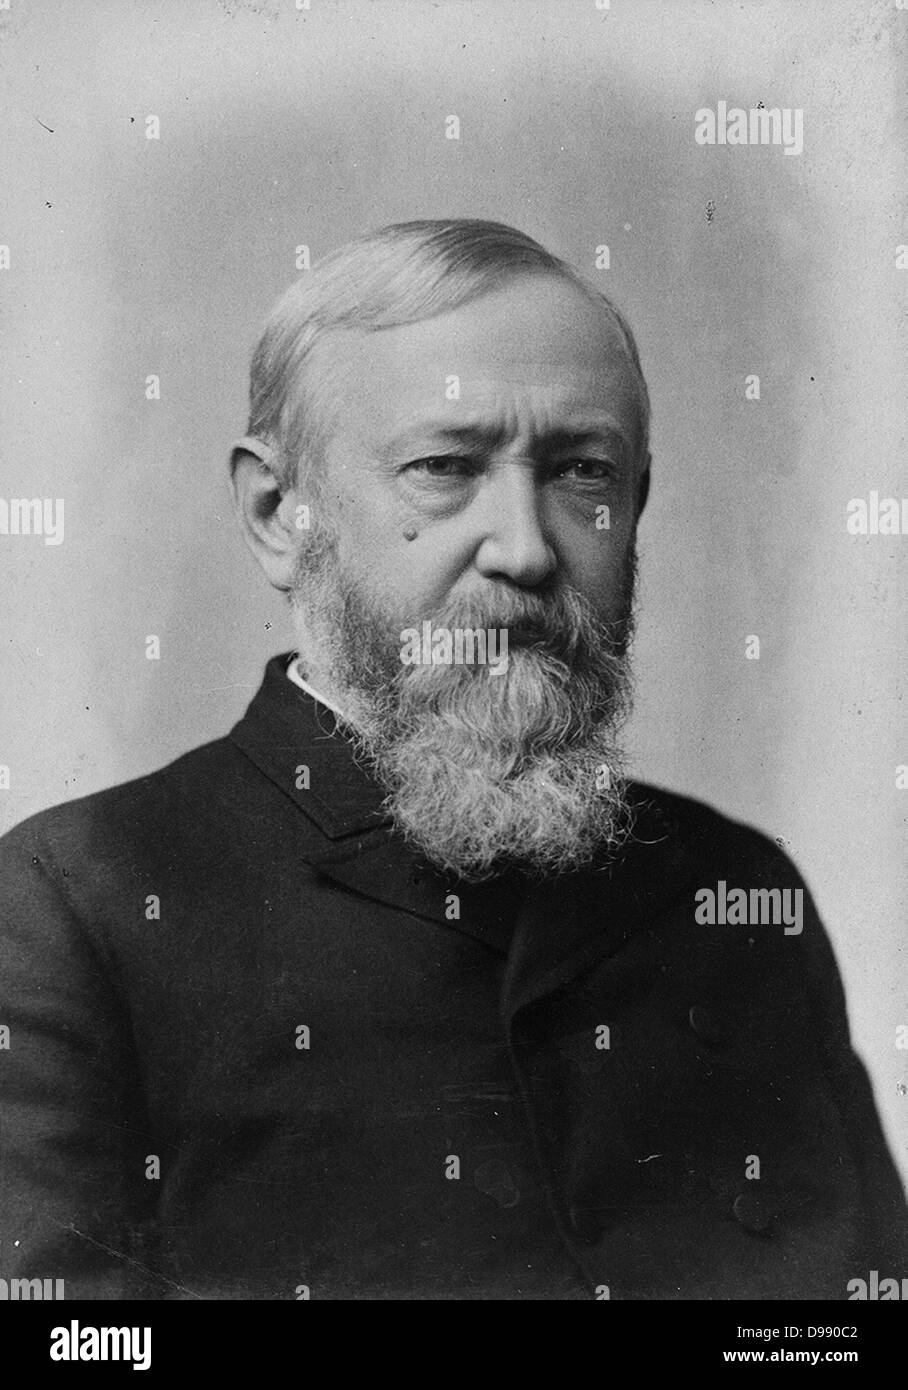 Benjamin Harrison (August 20, 1833 – March 13, 1901) was the 23rd President of the United States (1889–1893). Harrison, - Stock Image